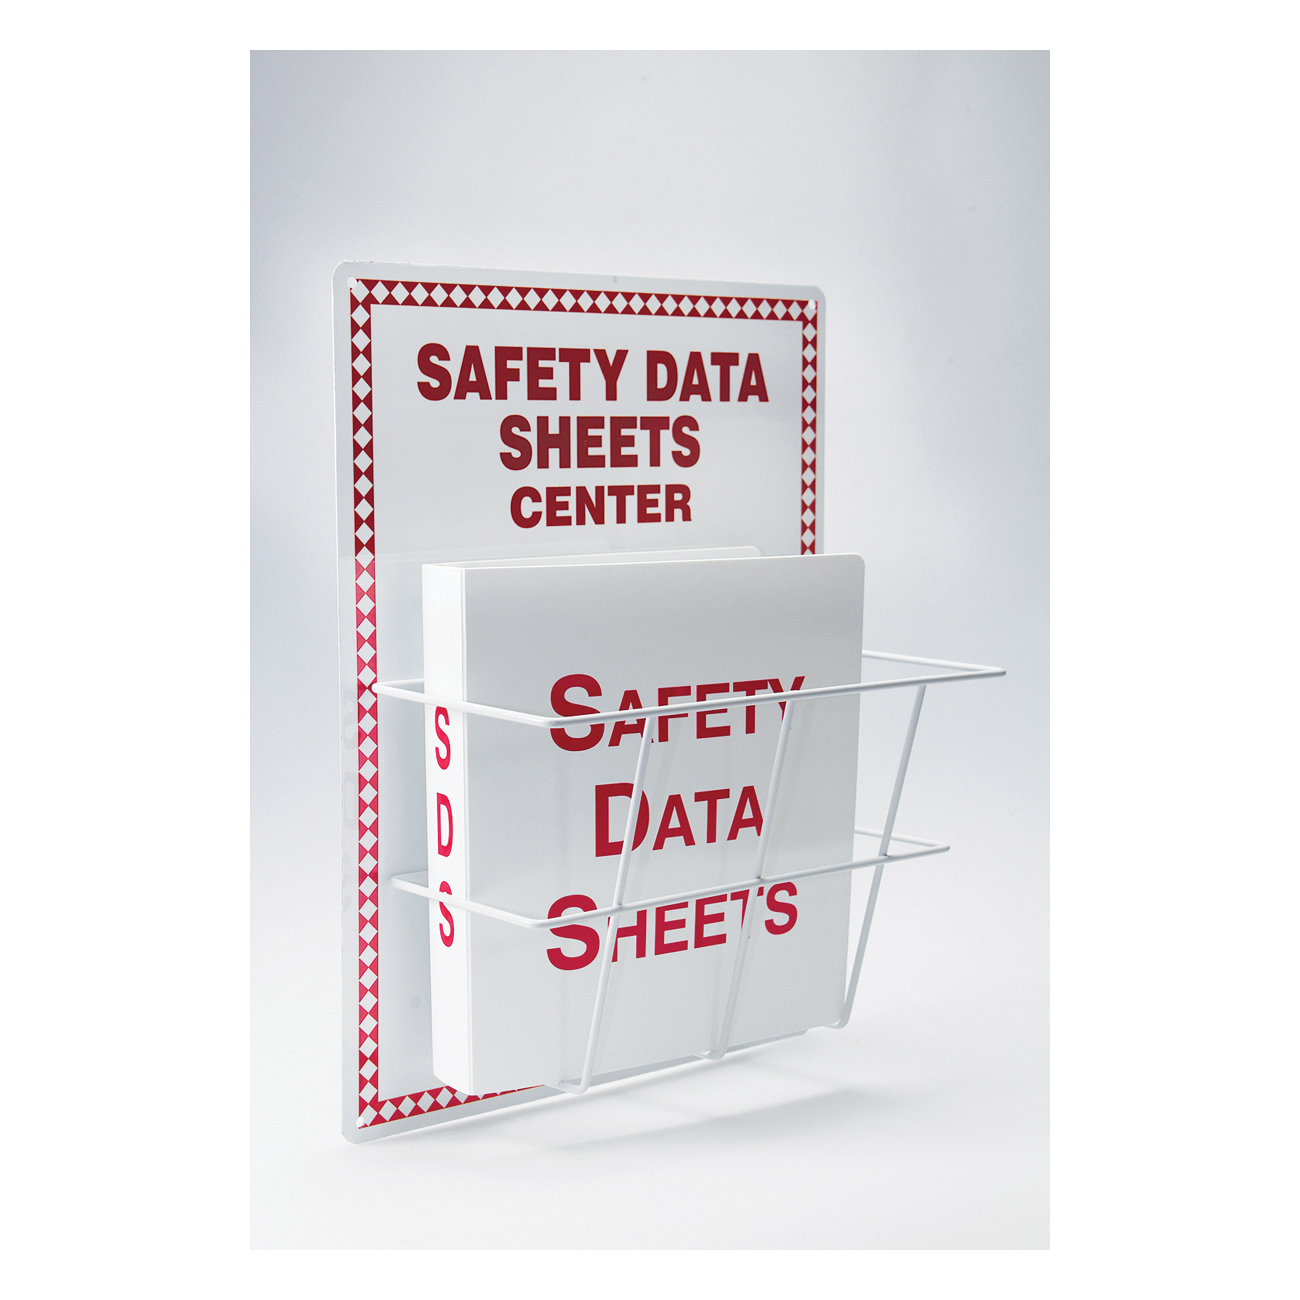 Accuform® ZRS409 SDS Center Board Kit, SAFETY DA SHEETS CENTER Legend, English, 20 in H x 15 in W, Aluminum, Wall Mount